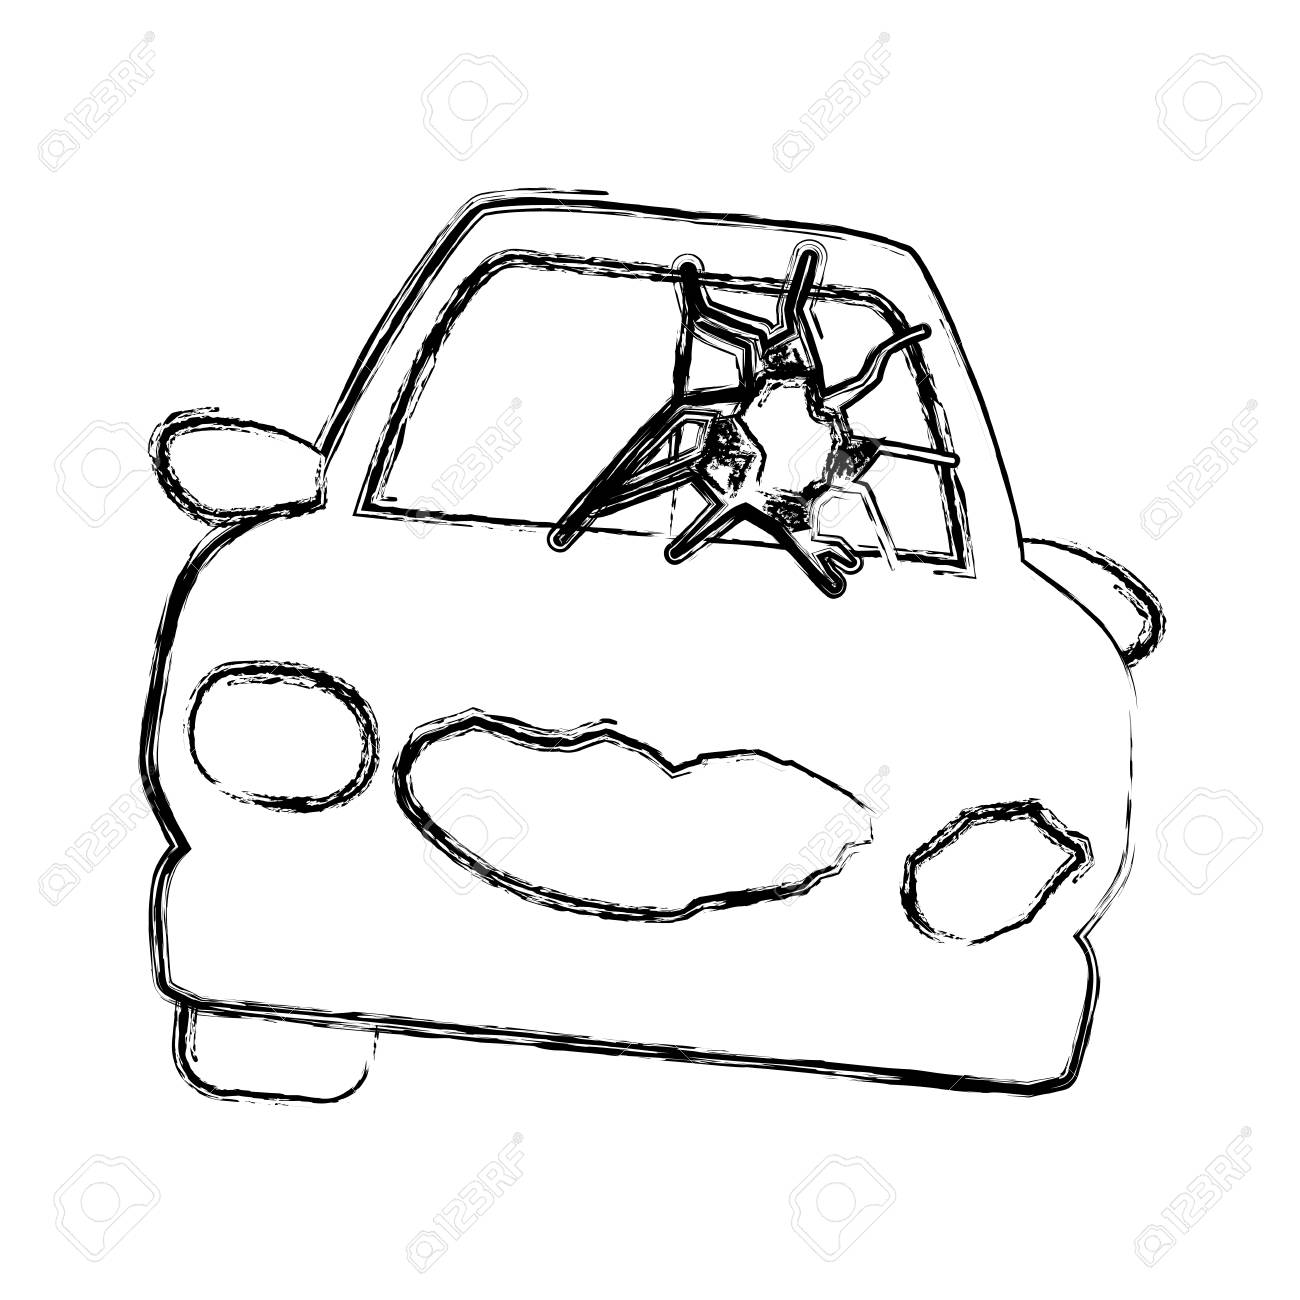 Old Fashioned Car Accident Sketch Adornment - Electrical Diagram ...